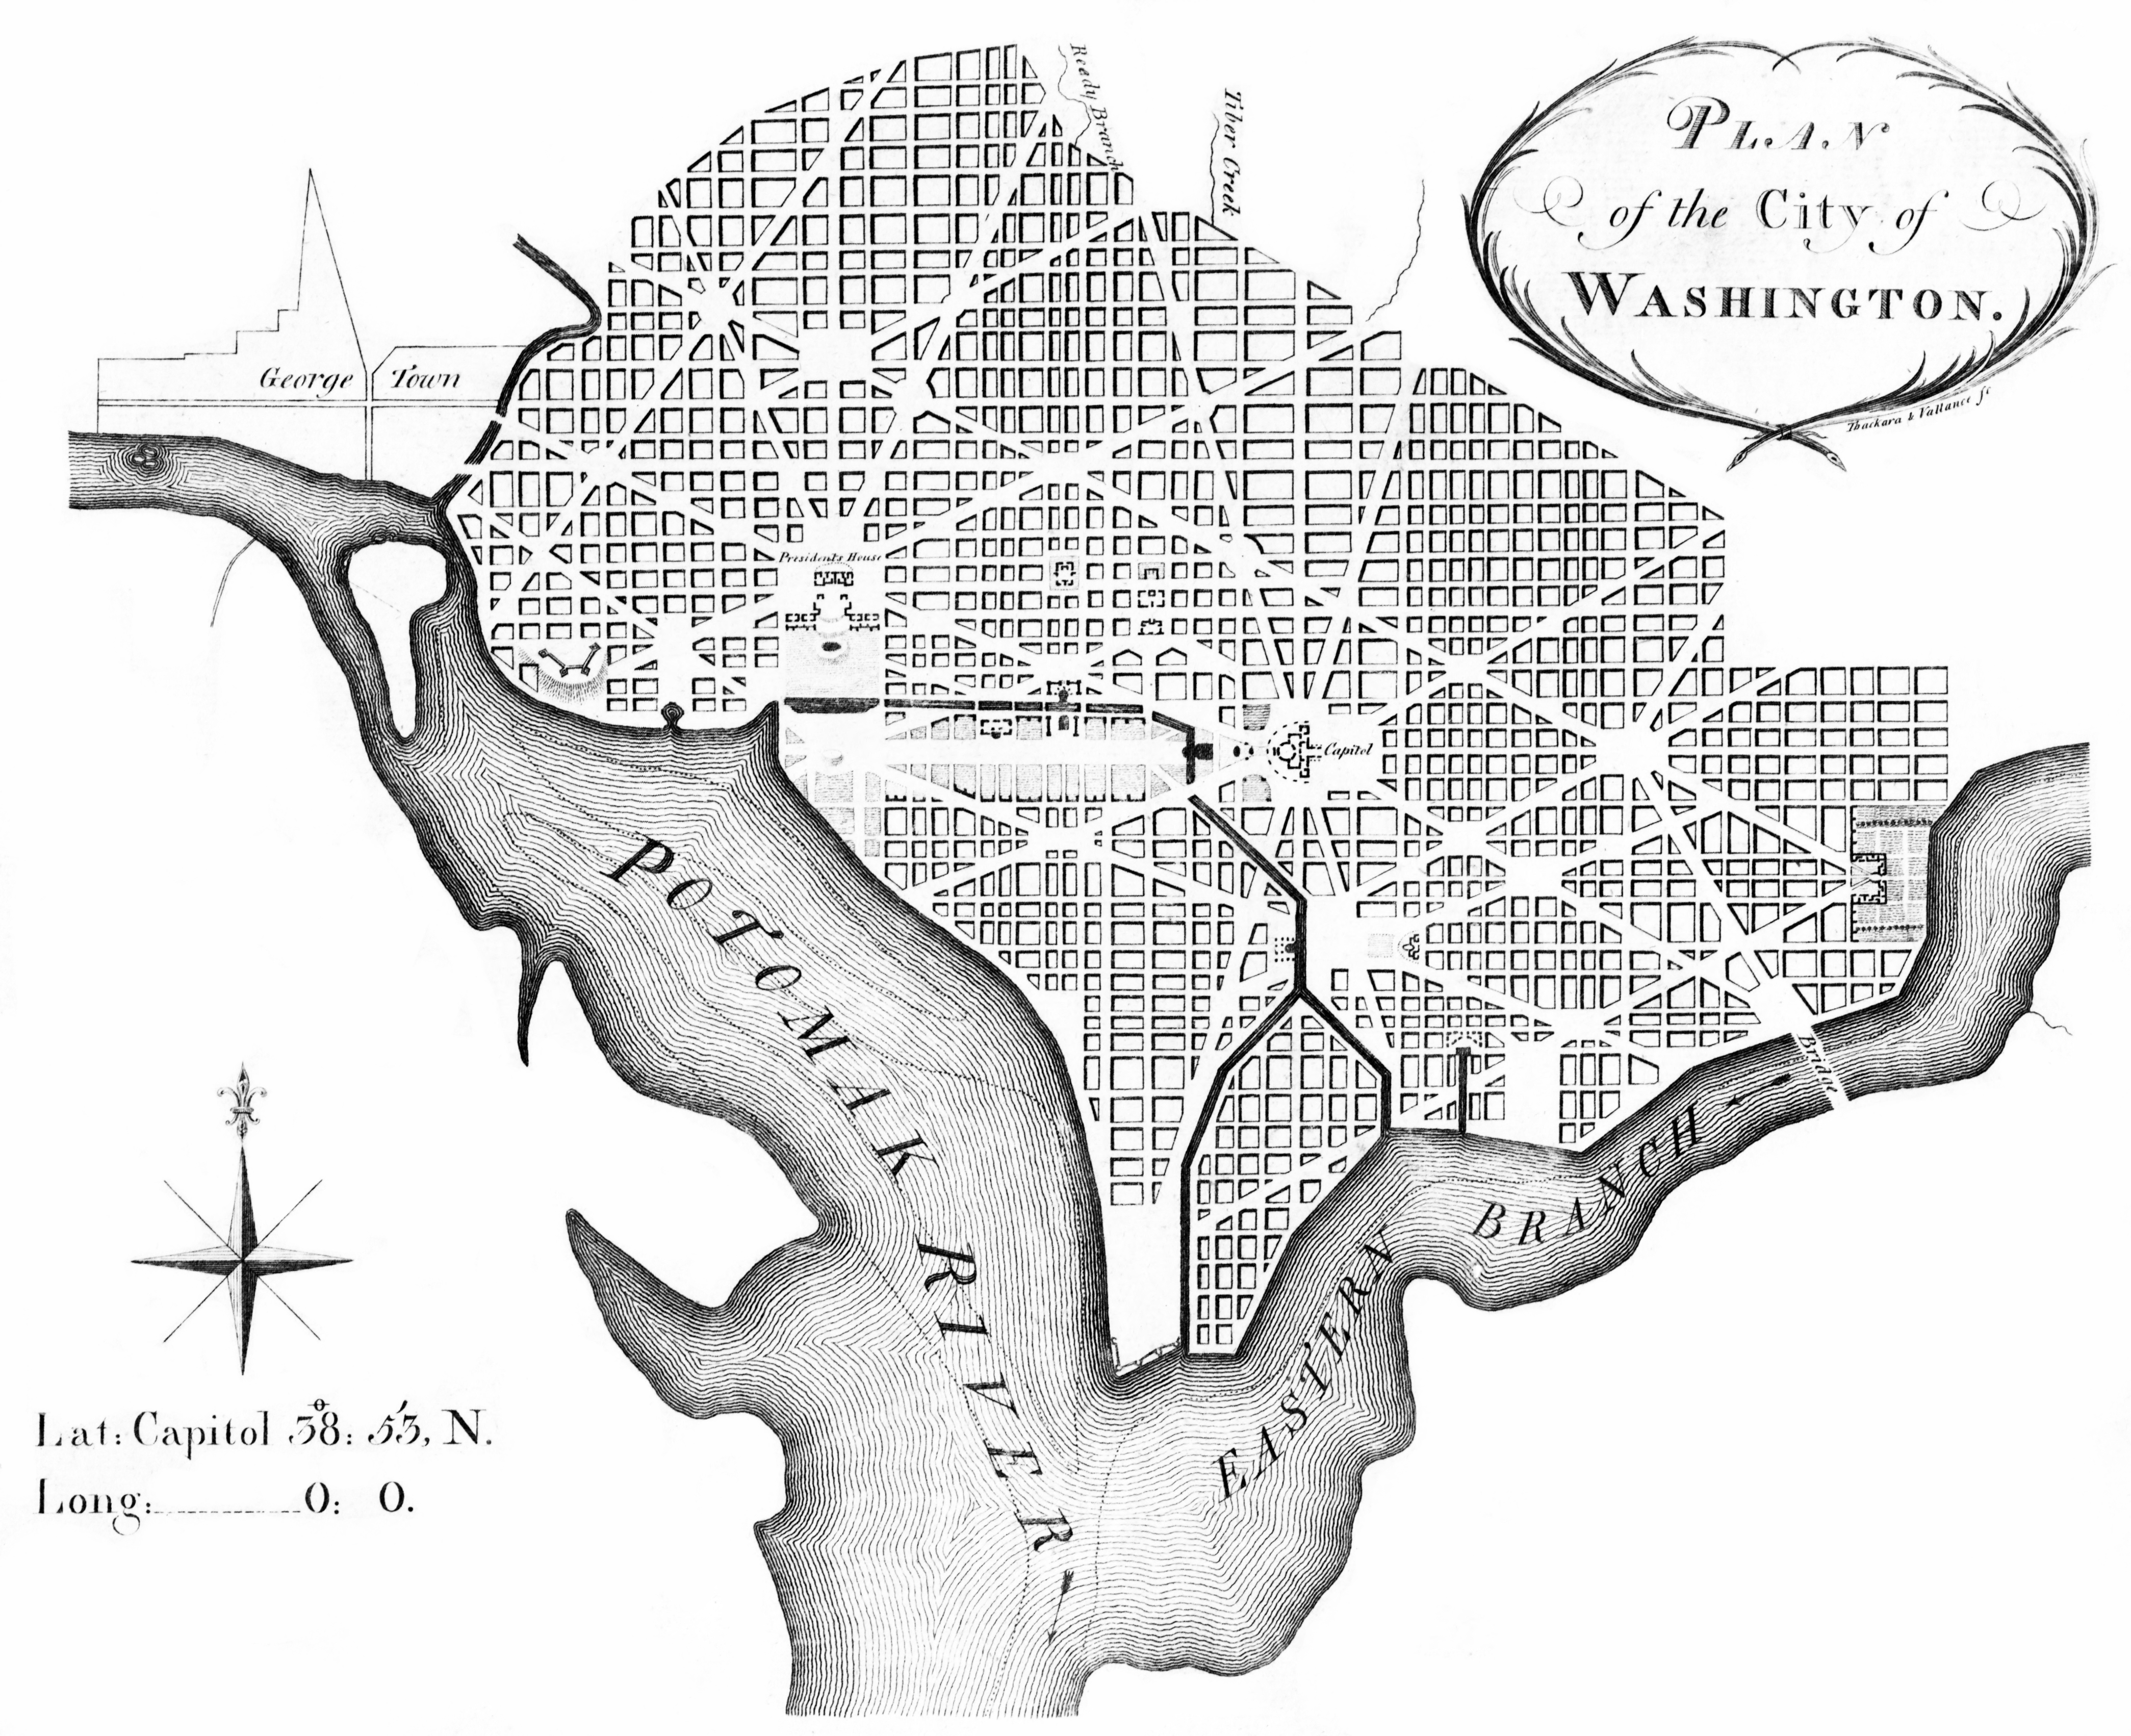 Plan of the City of Washington, March 1792, Engraving on paper, Andrew Ellicott, revised from Pierre (Peter) Charles L'Enfant; Thackara & Vallance sc., Philadelphia, March 1792